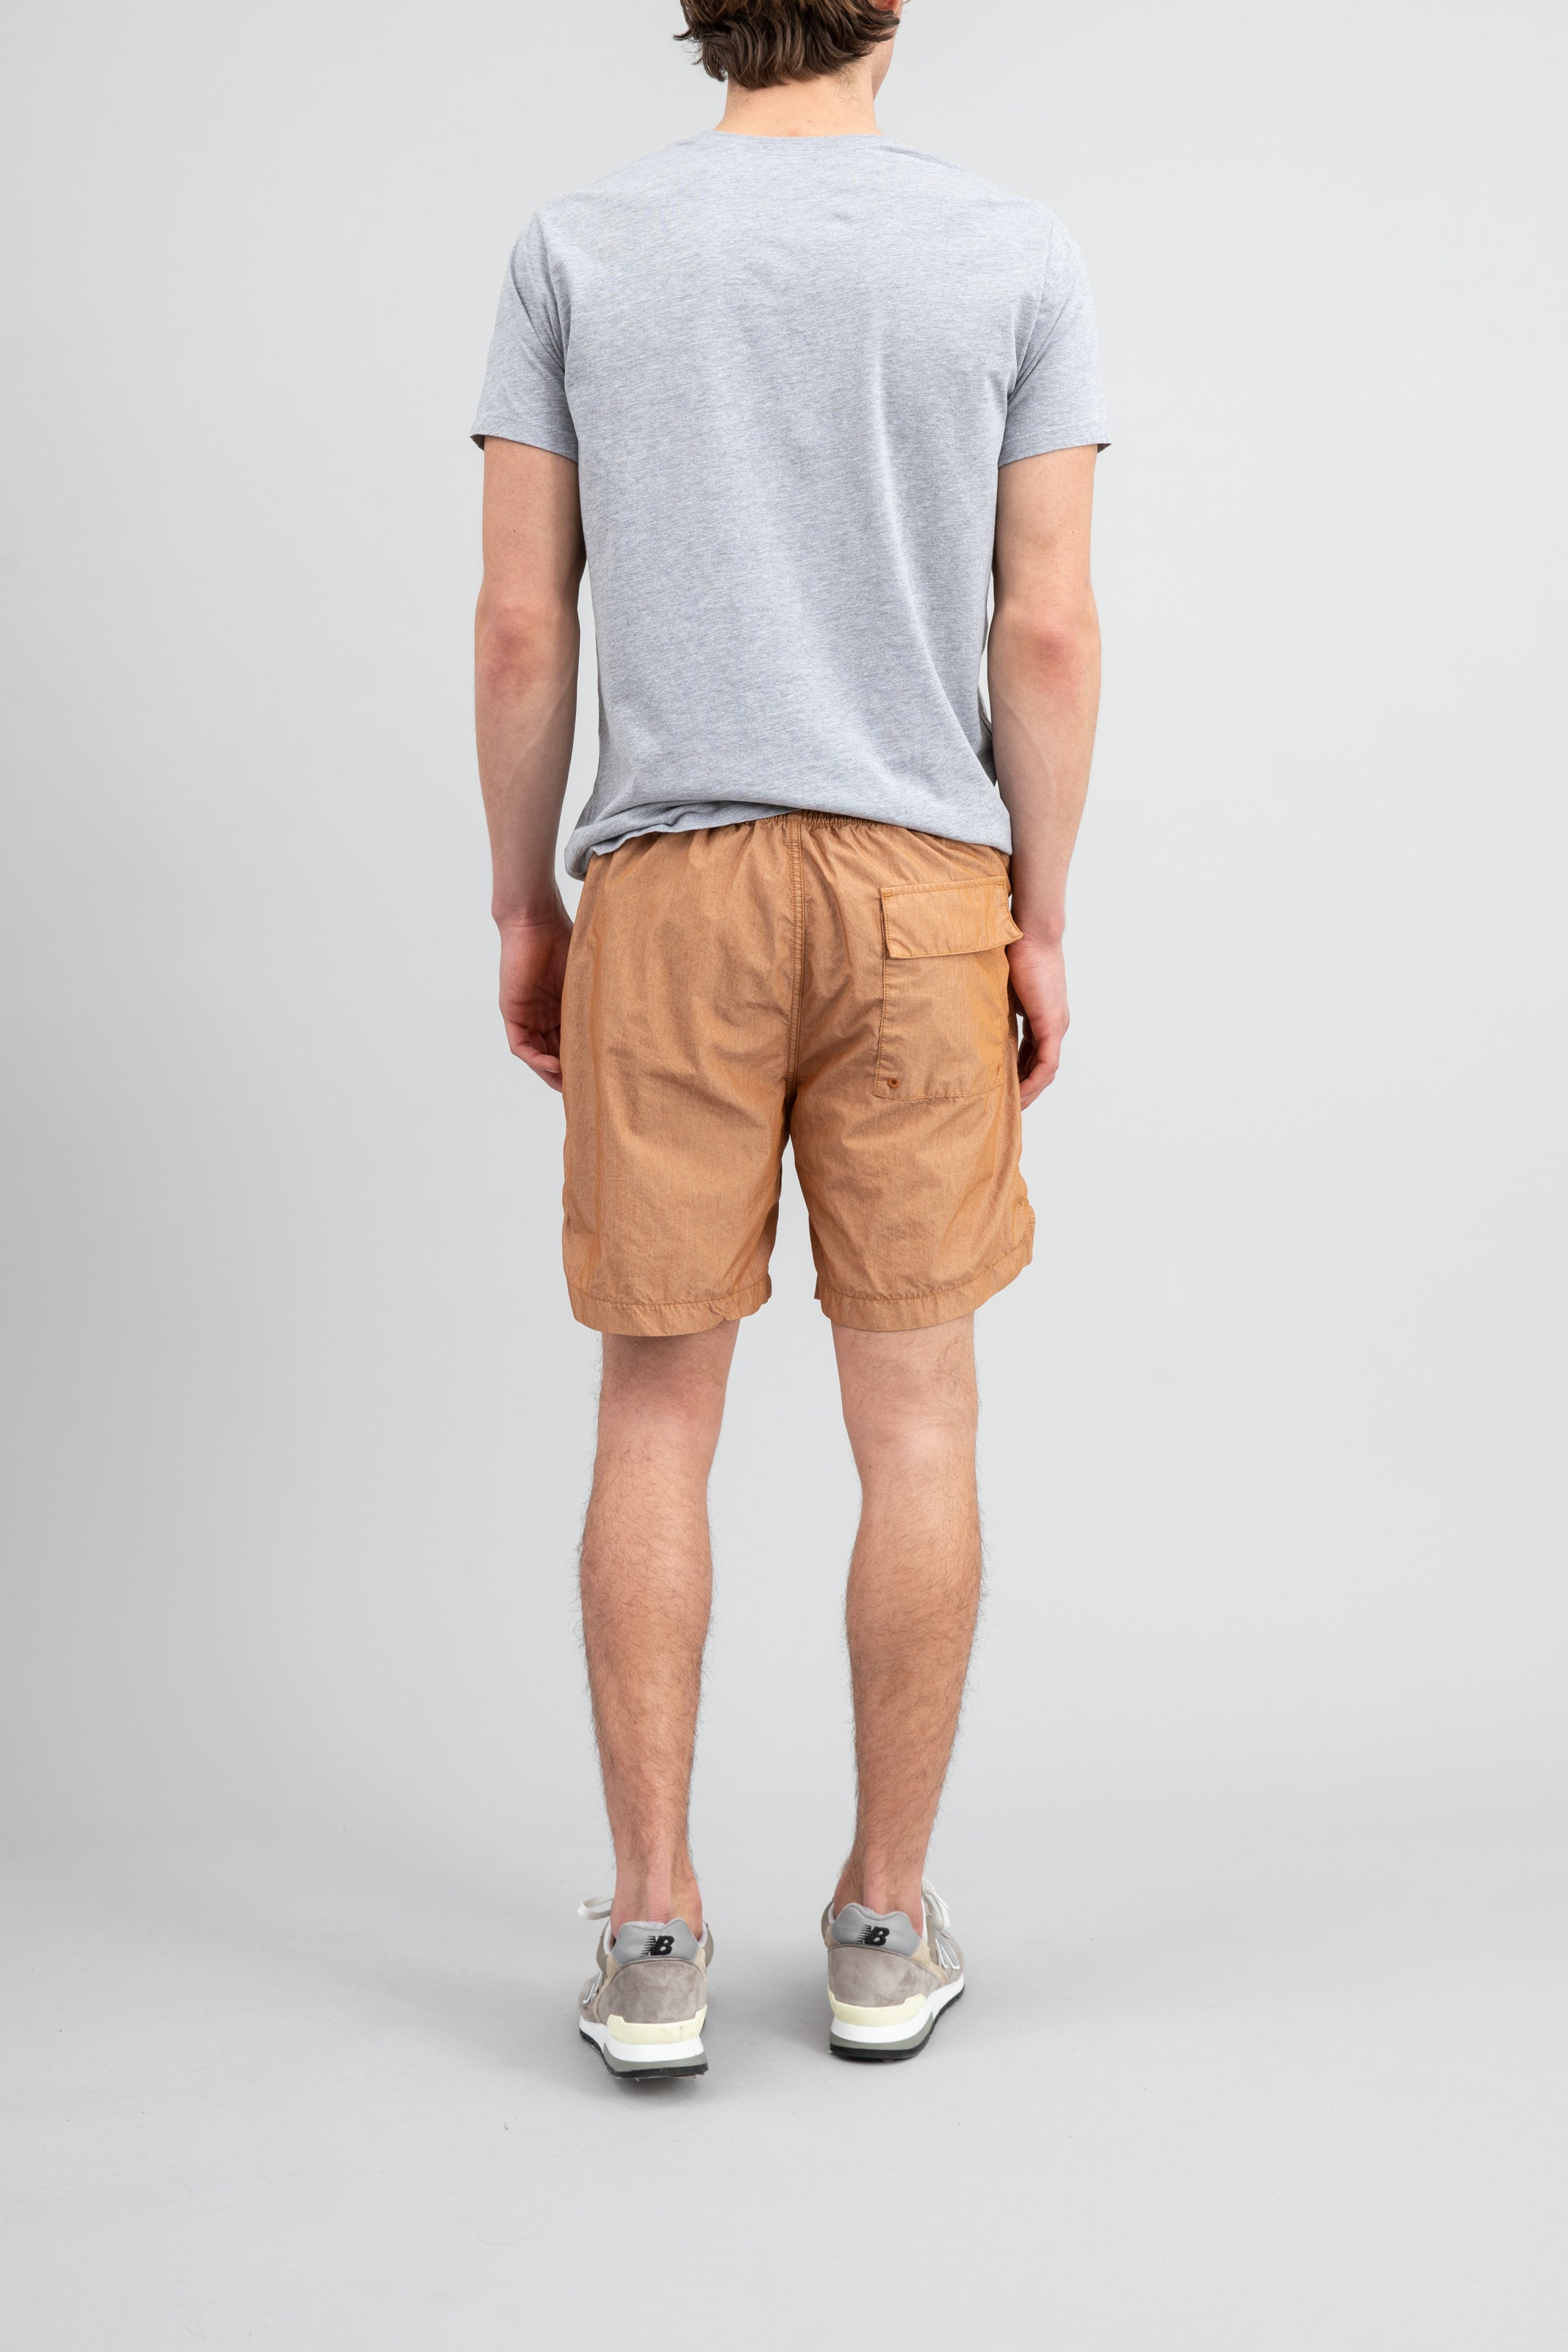 Men's Cotton Nylon Beach Short Squash